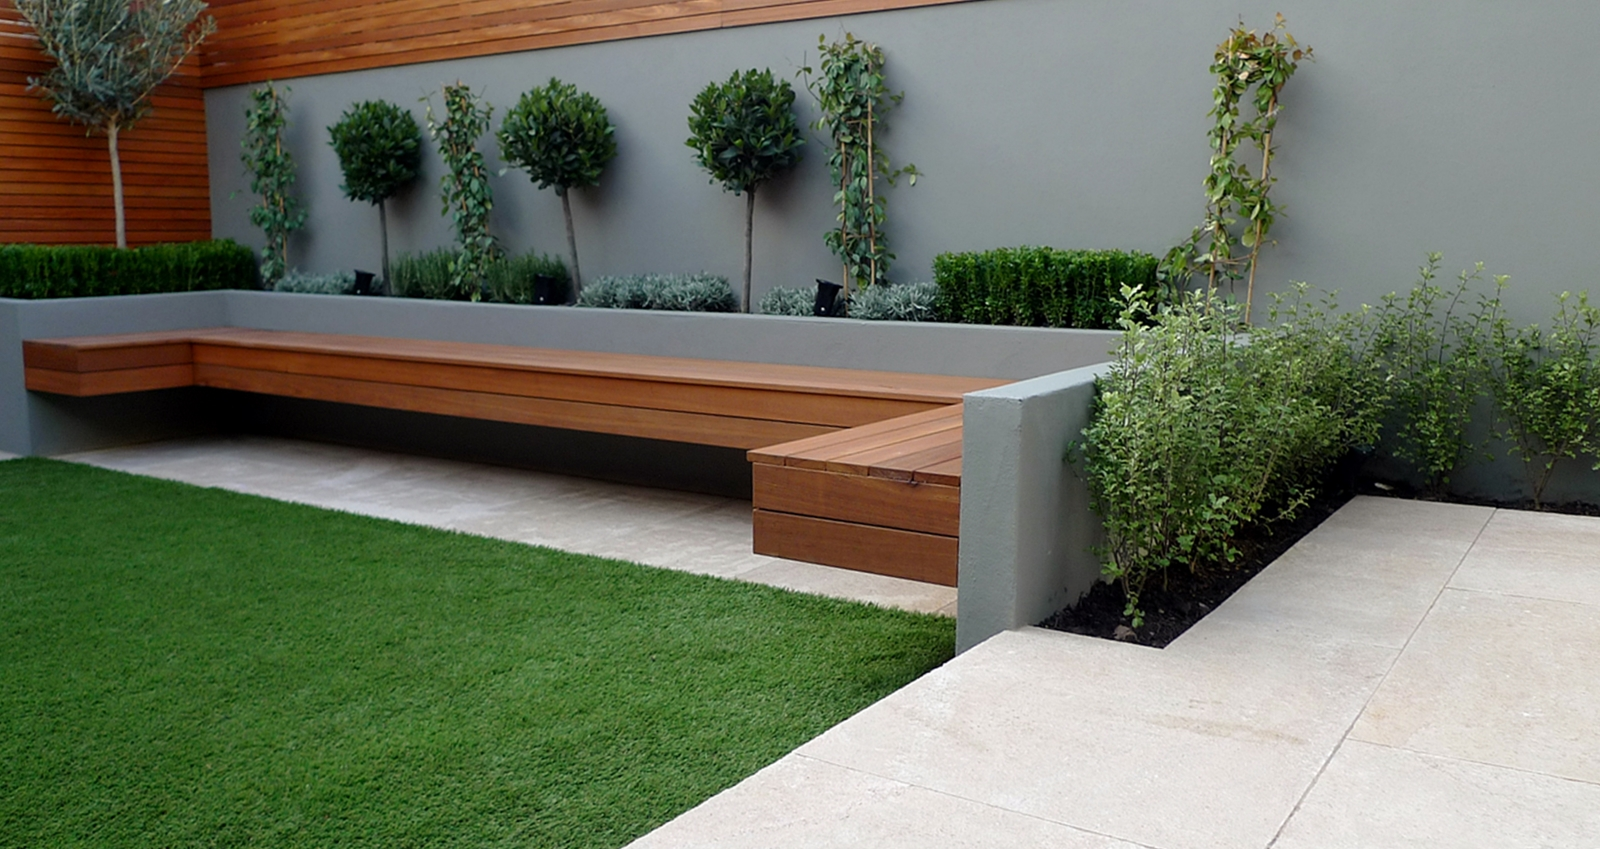 Courtyard london garden design for Small garden bed design ideas